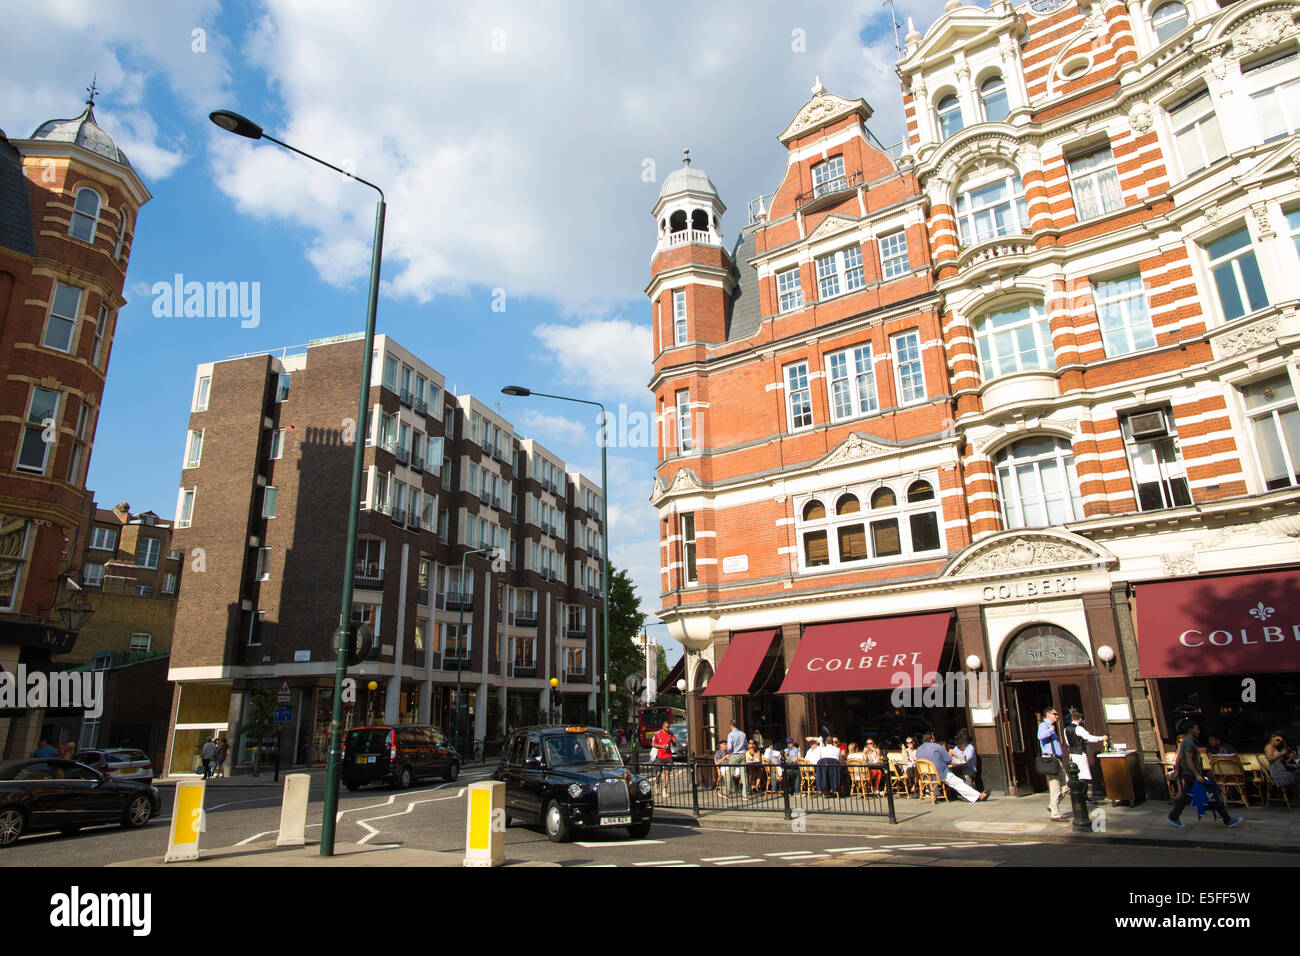 Colbert restaurant sitting on one of London's key sites and the former location of Oriel, Sloane Square, Chelsea, - Stock Image